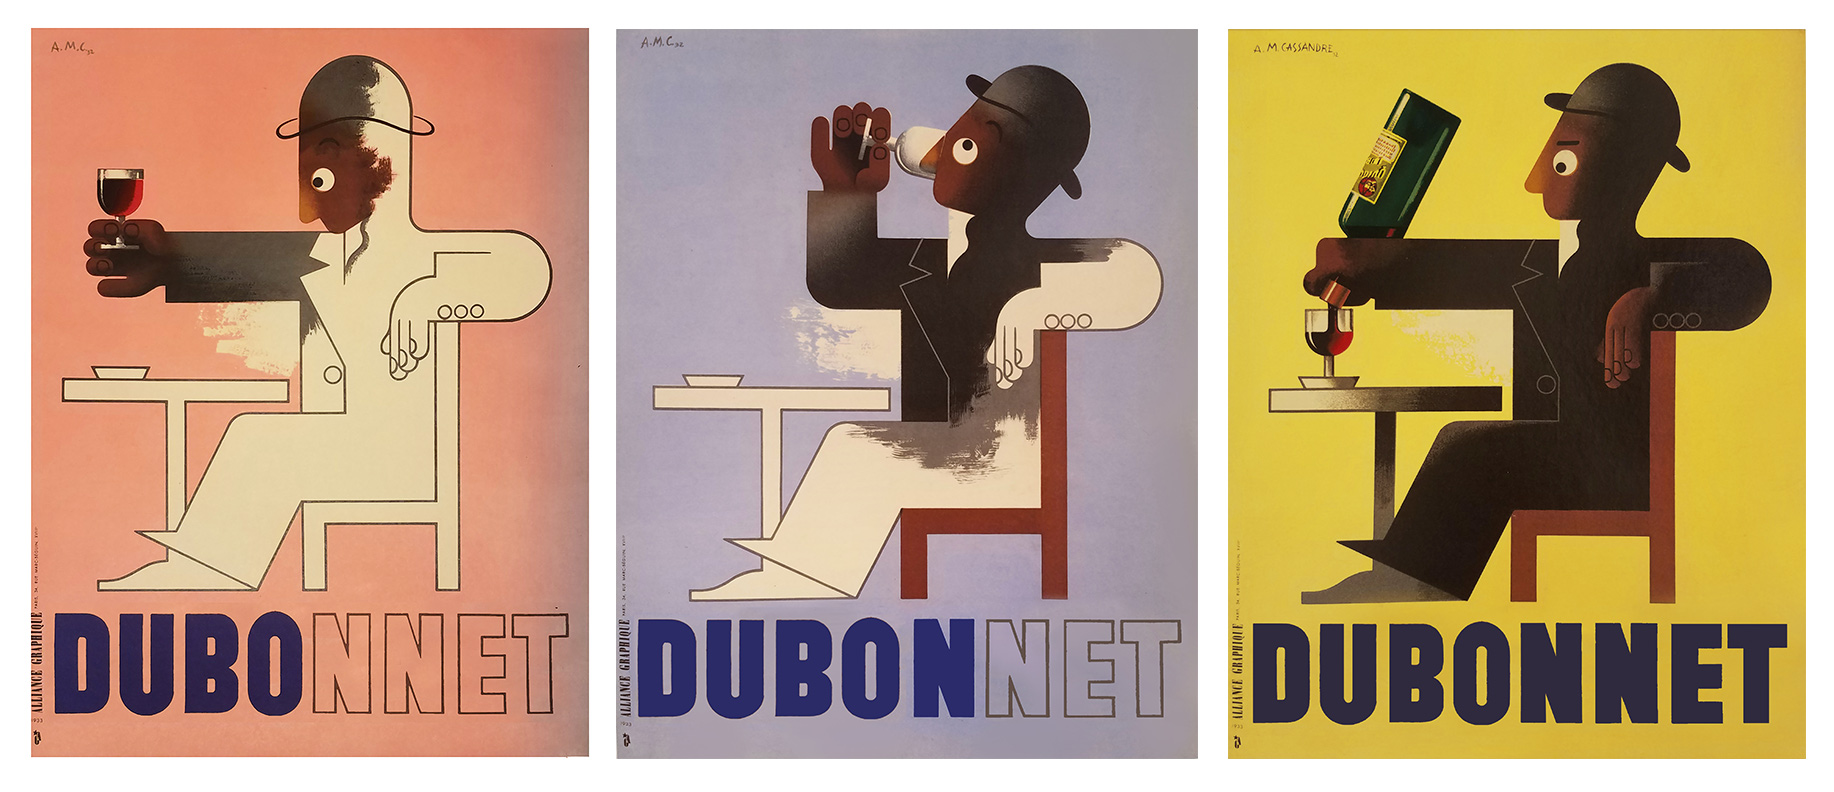 three illustrational posters showing a figurine man drinking a glass of Dubonnet and pouring himself another